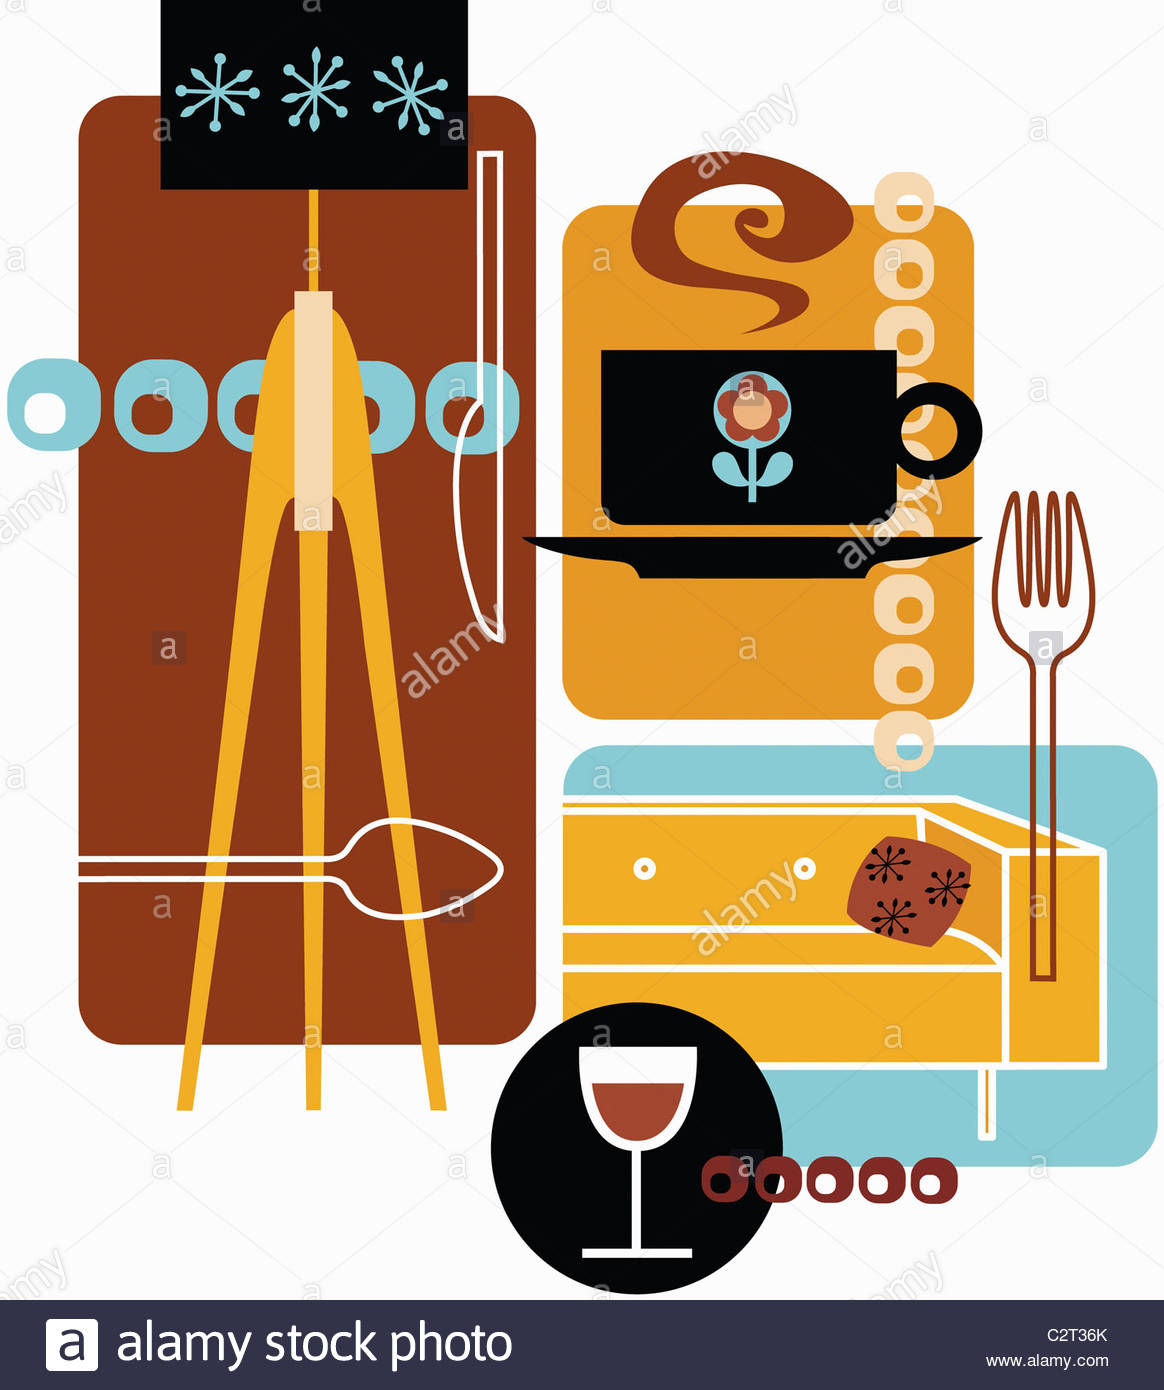 Retro montage of lamp, coffee, fork, sofa and wine glass - Stock Image